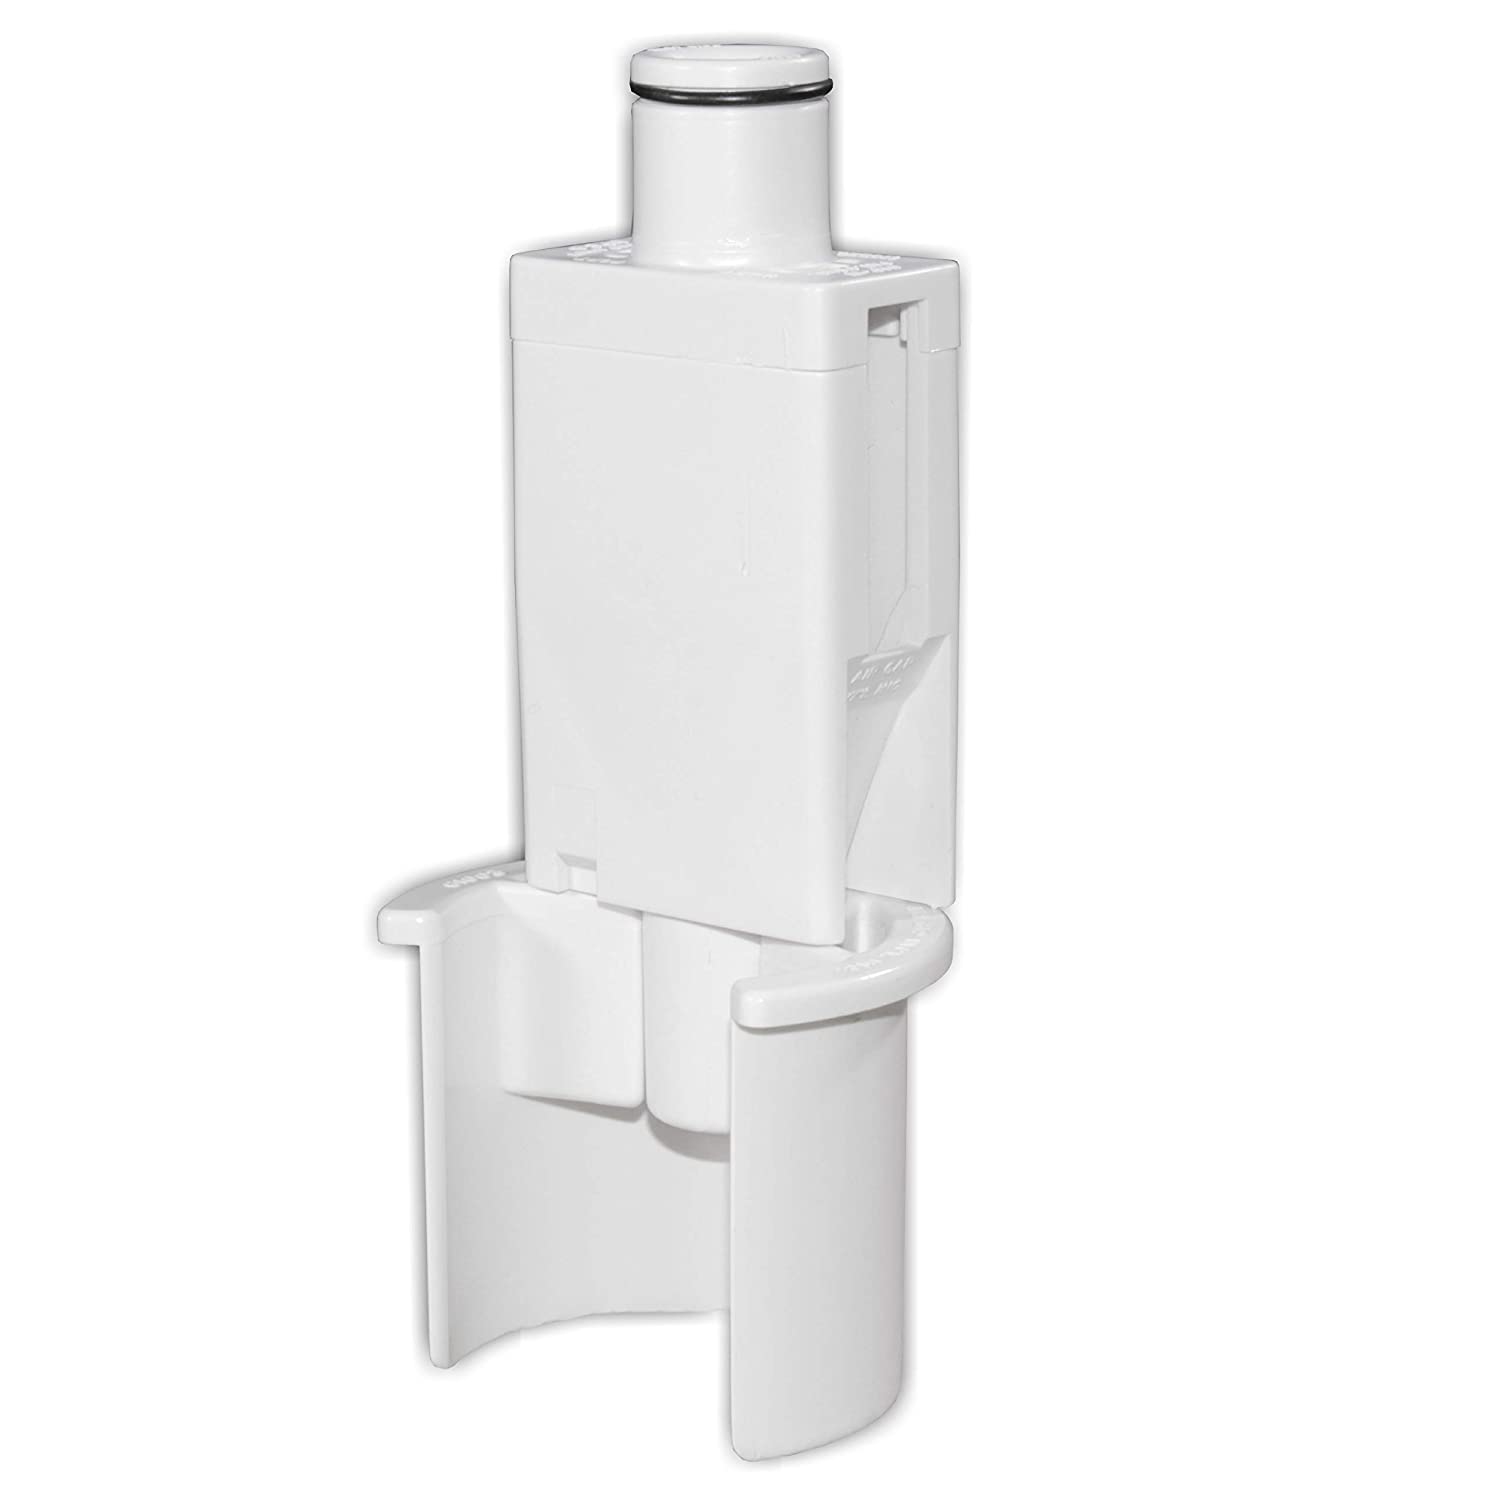 Water Softener Air Gap for Installation in Washer Machine 2-inch Drain (GAP-IT, KIT HF1, AG140-001)